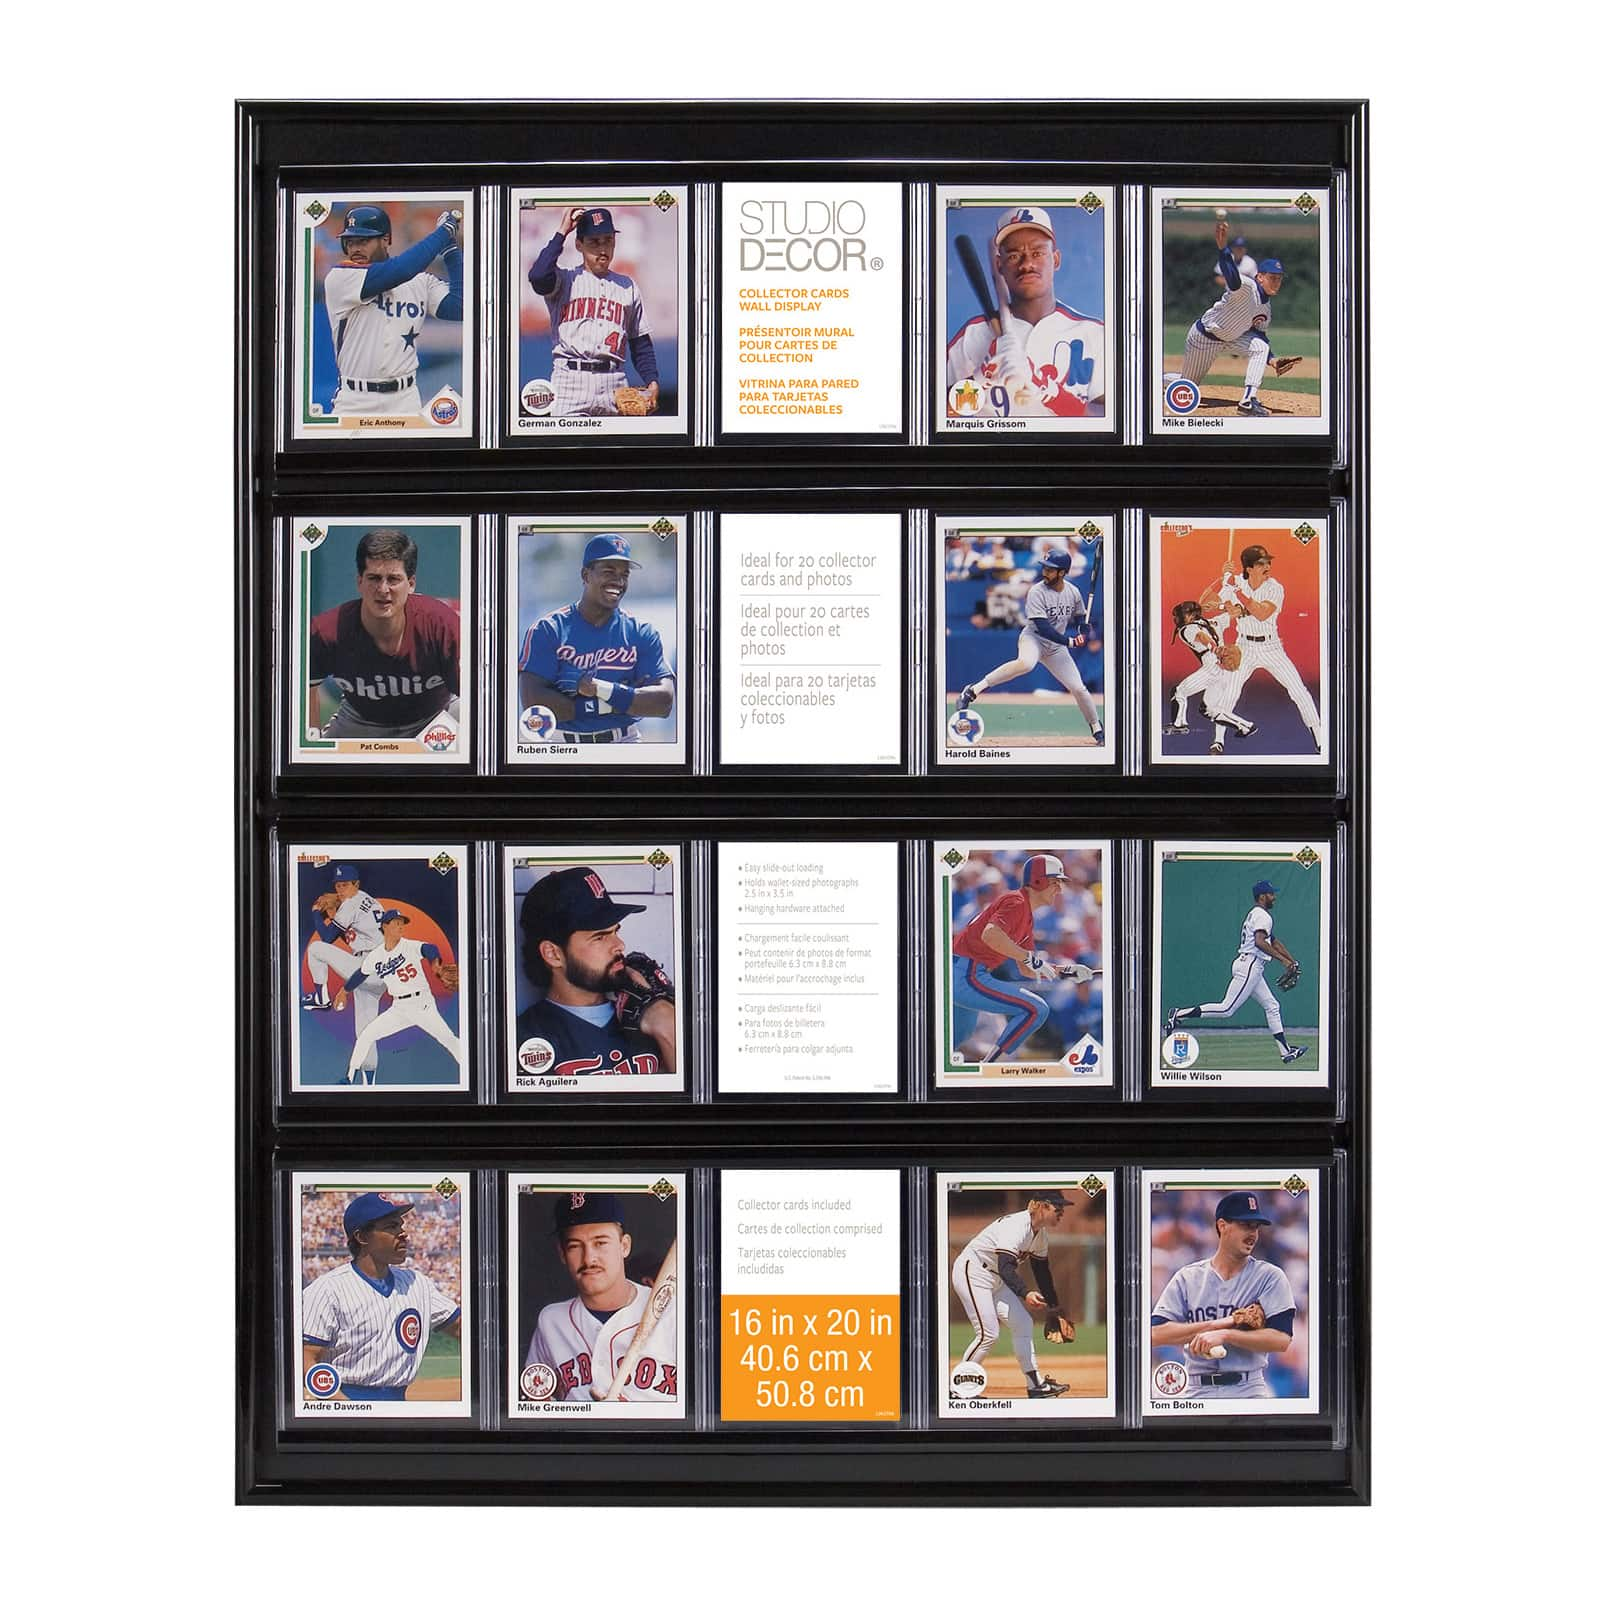 50 Ultra Pro Card Stands Display Pictures Photos Sportscards Stand Easel